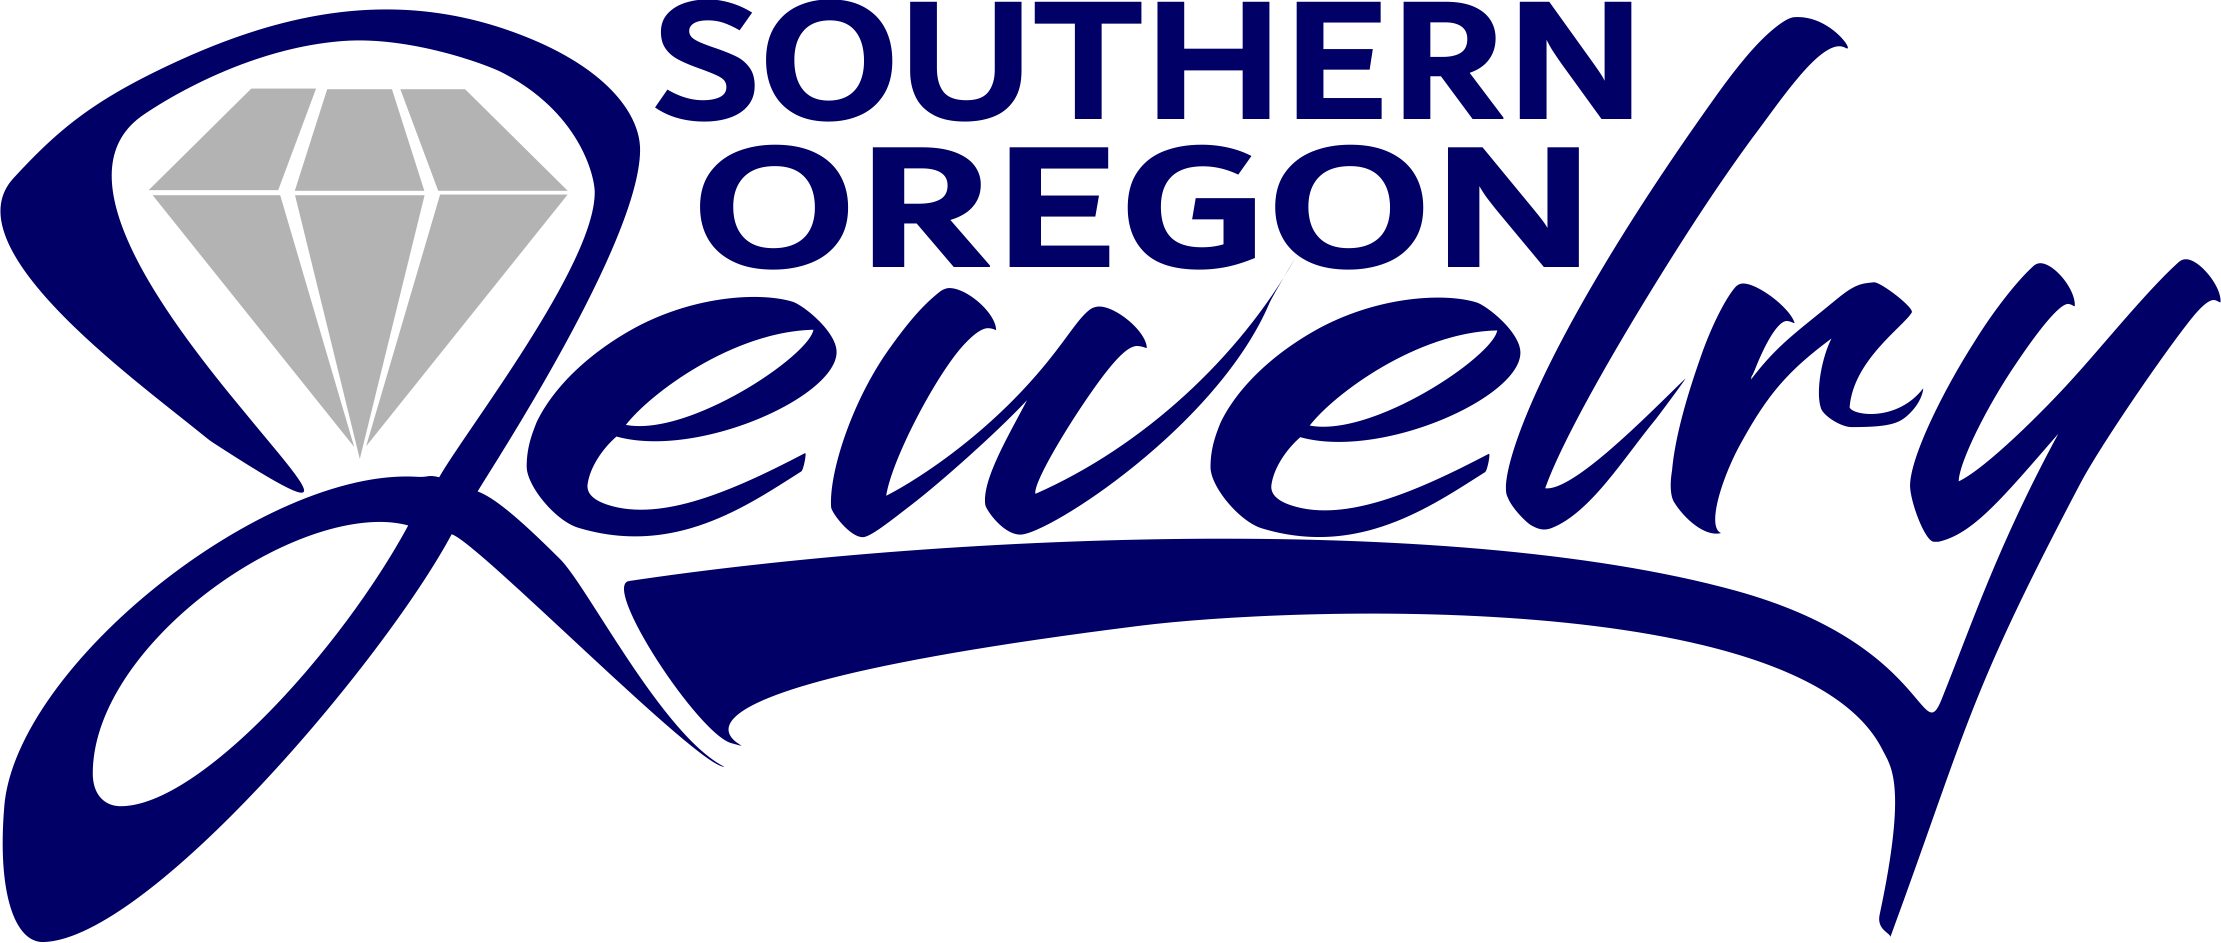 Southern Oregon Jewelry